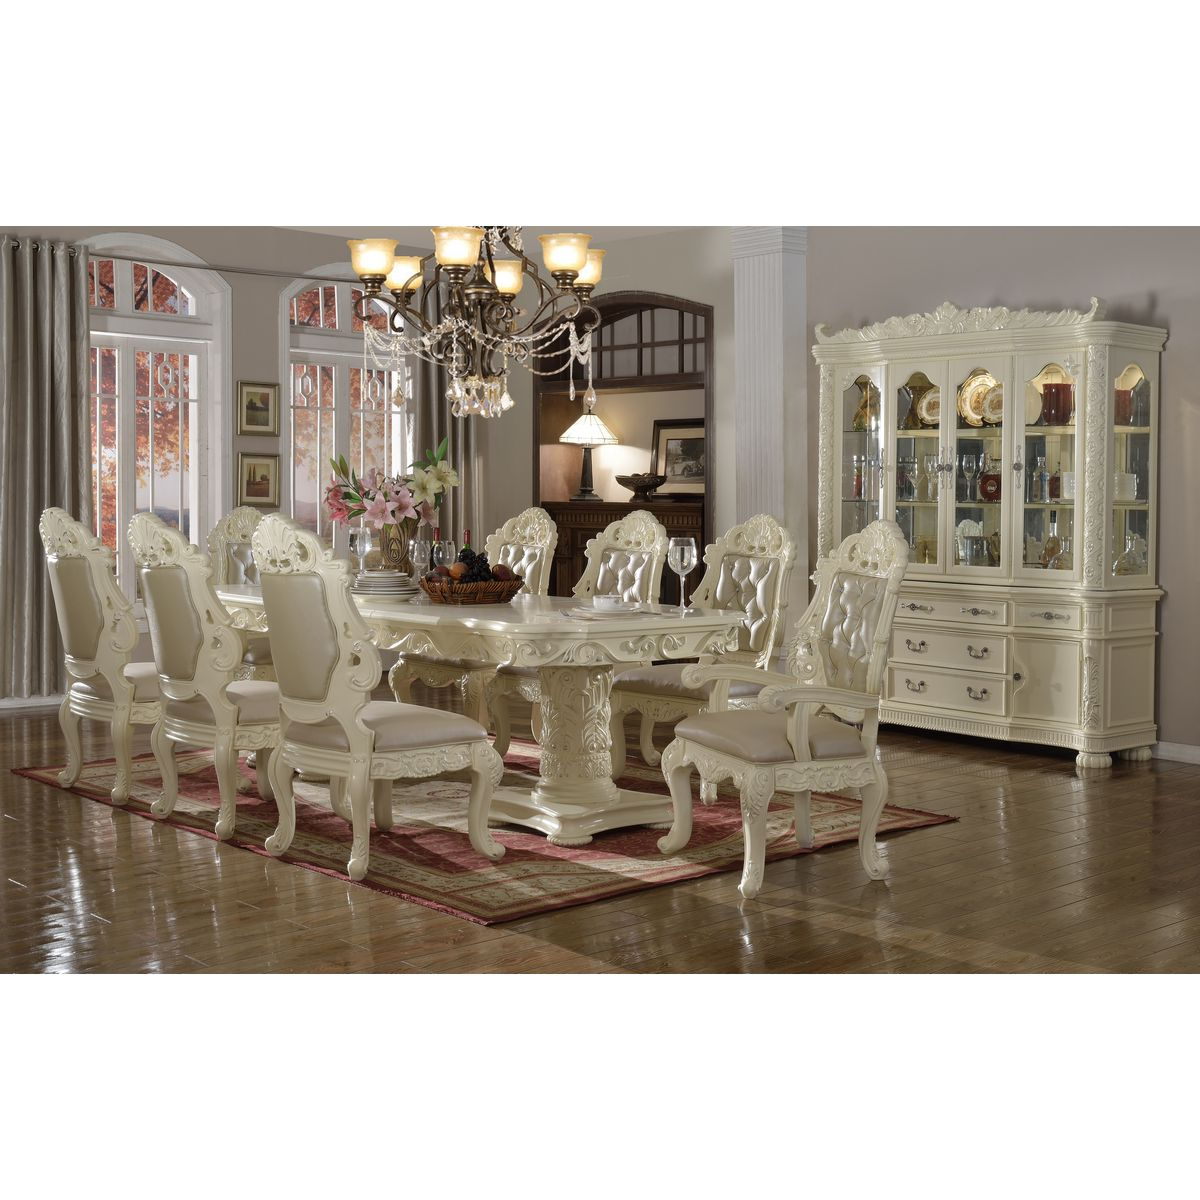 Madrid 10 Piece Dining Set In Pearl White W/ Ornate Carving U0026 Crystal  Tufted Leather